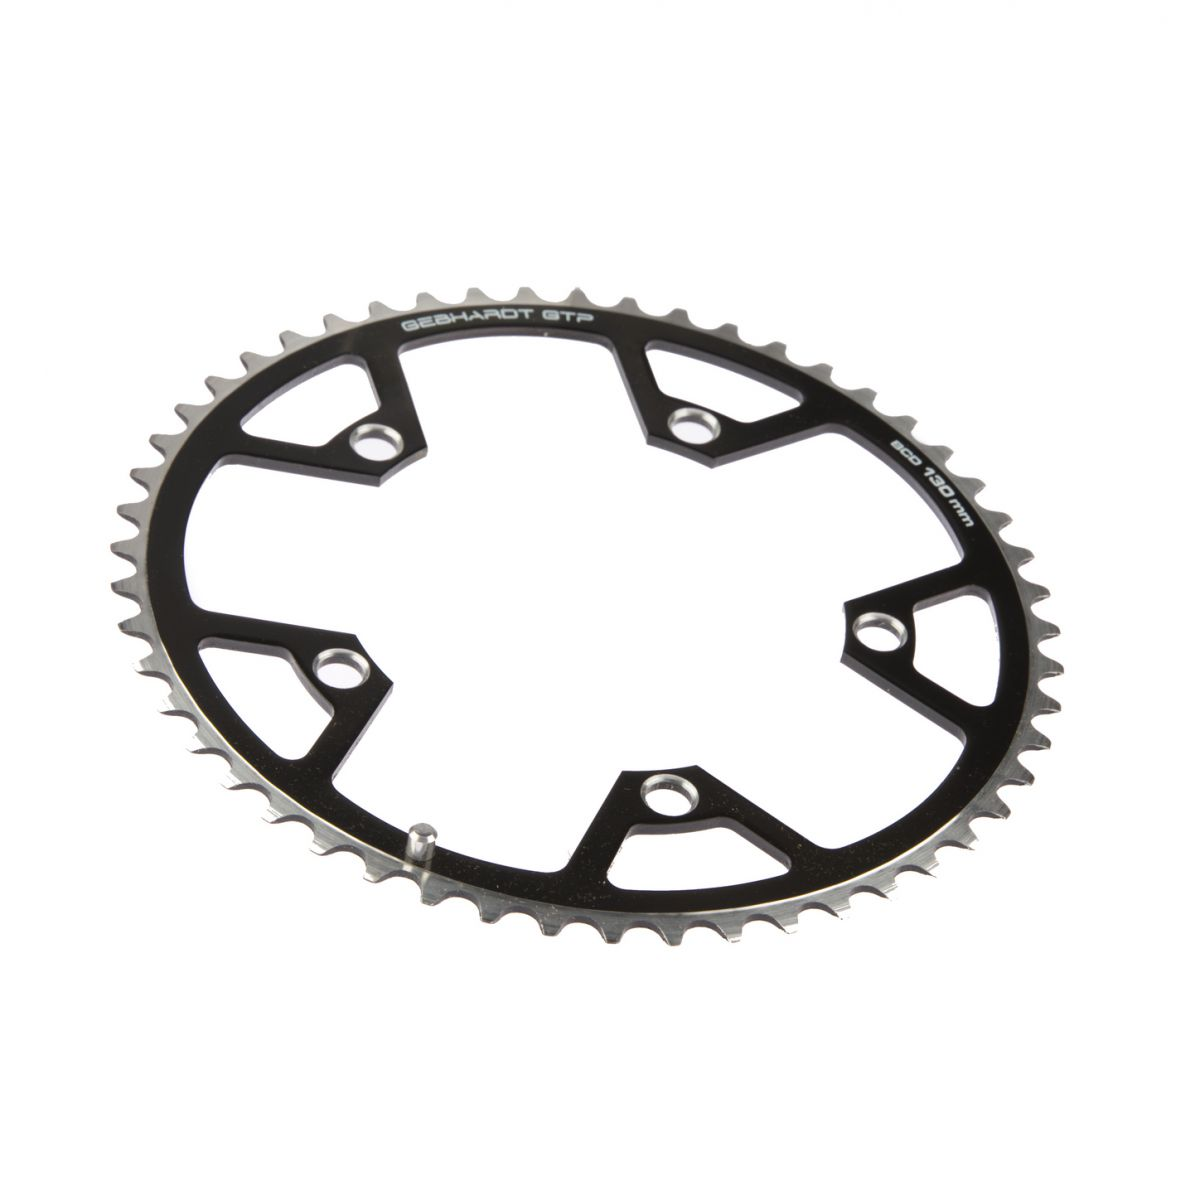 gebhardt chainring classic bcd 135 mm 5hole 52t black